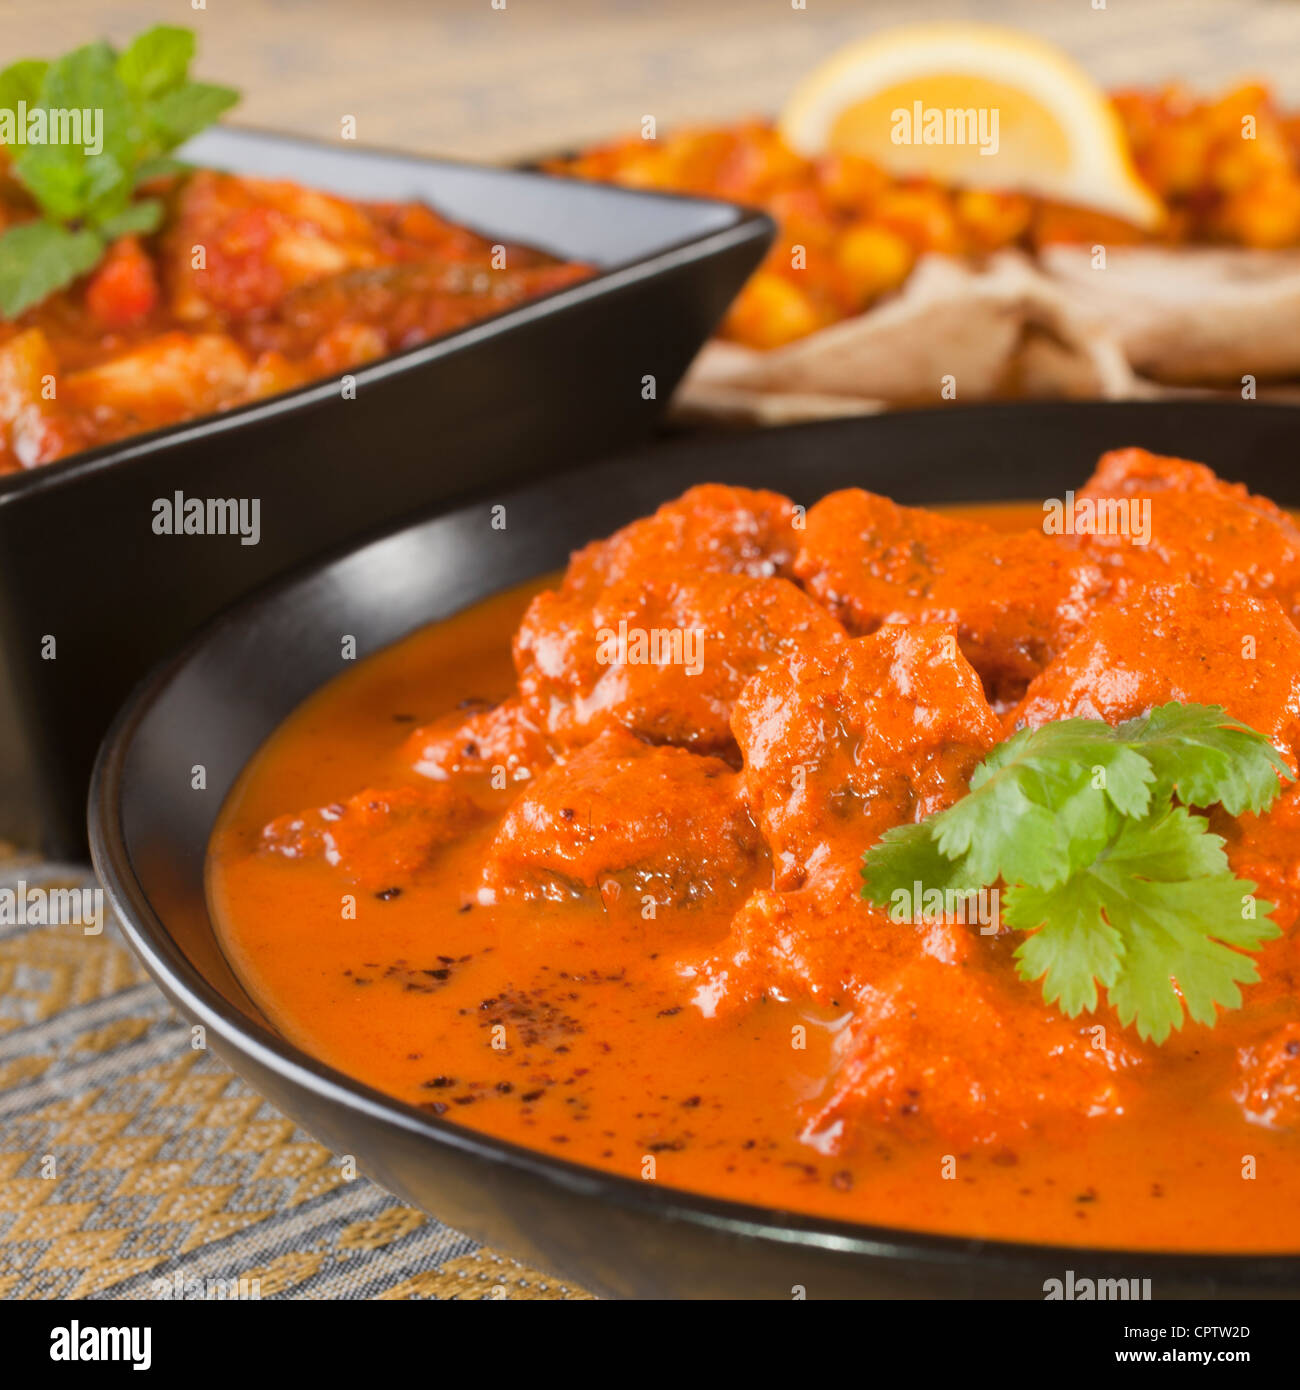 Favourite Indian curry Rogan Josh with chapatis and channa dhal, and chicken jalfrezi. - Stock Image